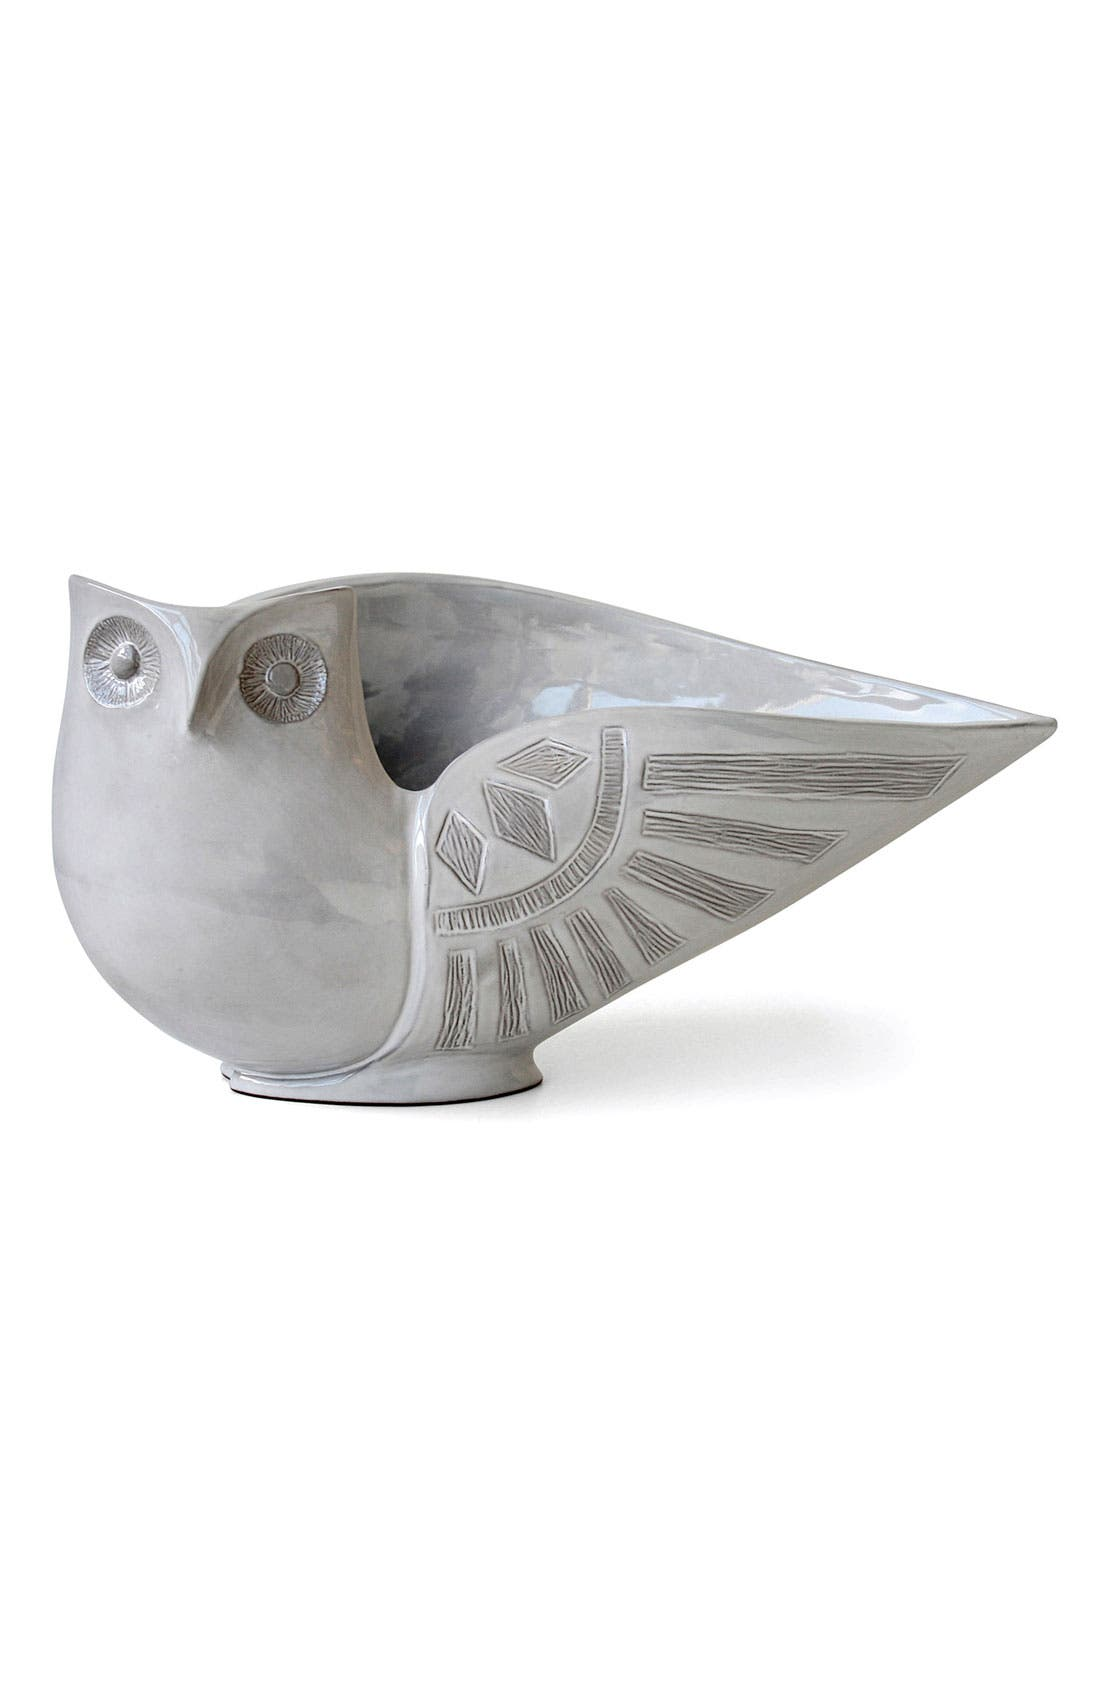 Alternate Image 1 Selected - Jonathan Adler 'Utopia' Owl Bowl